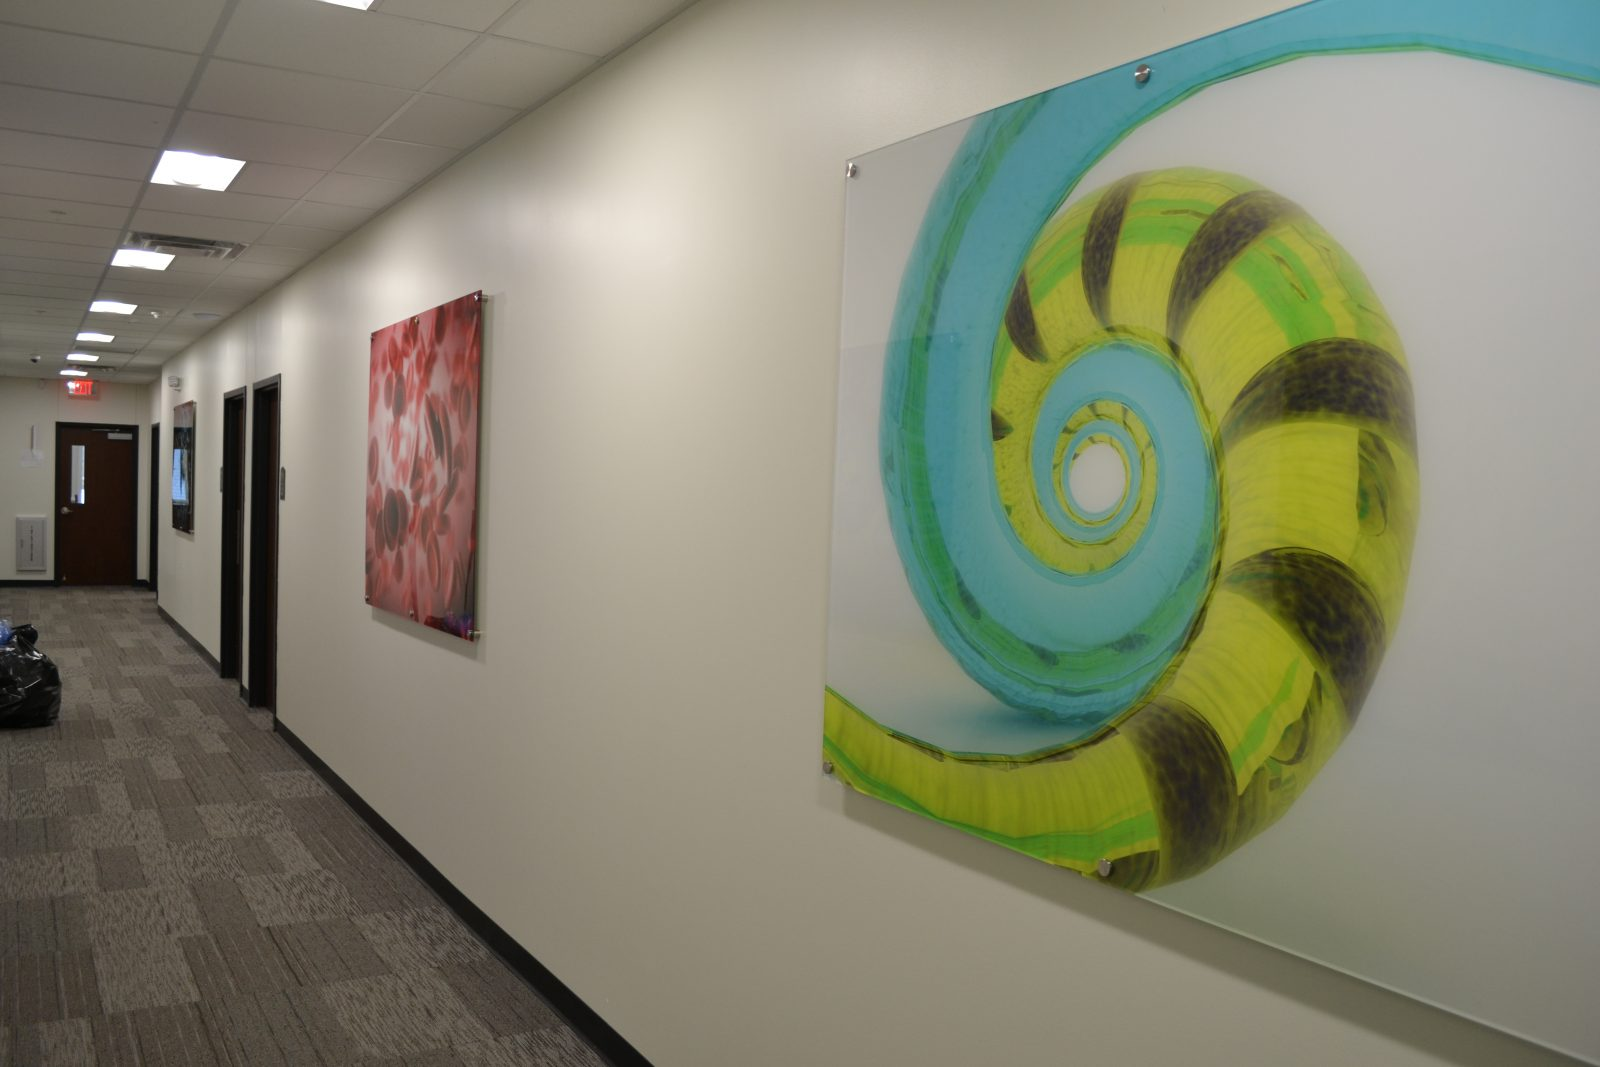 artwork on the walls of a hallway